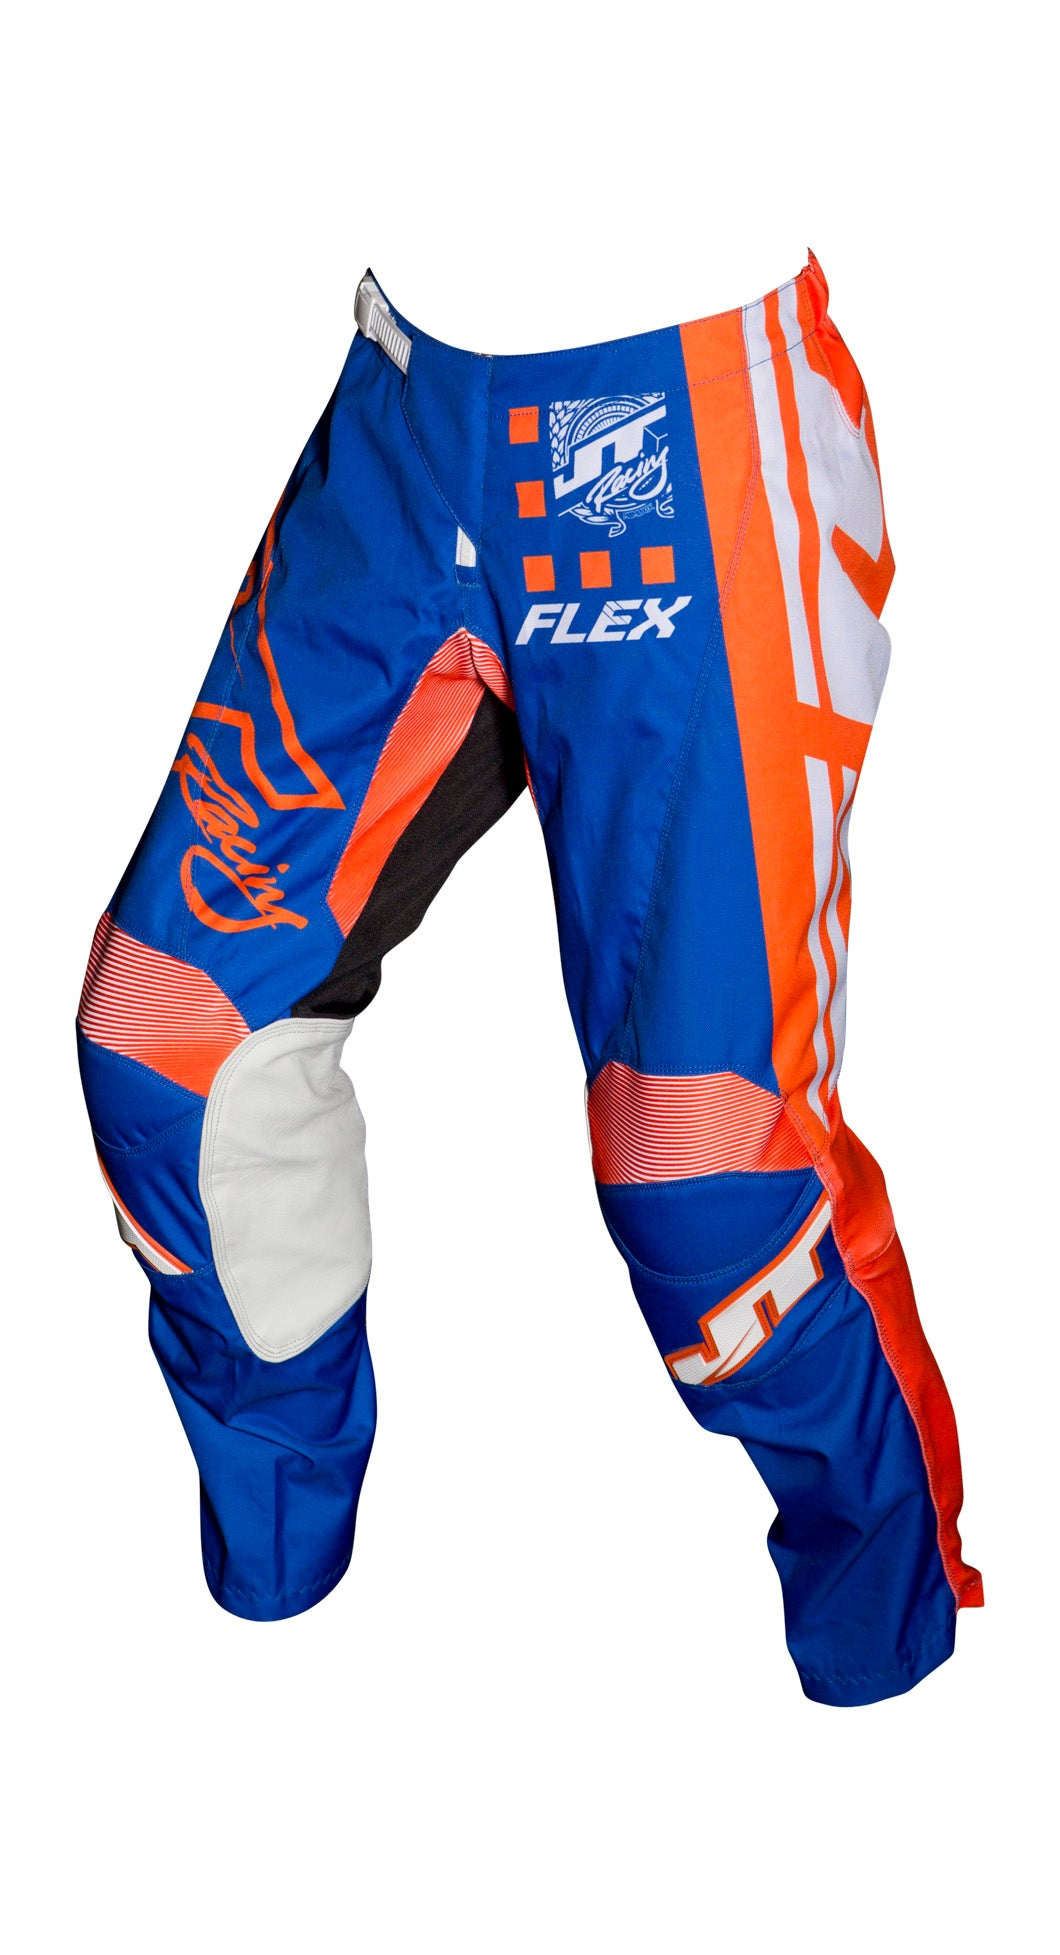 JT RACING USA-2018 Flex ExBox Pants, Blue/Fluro Orange